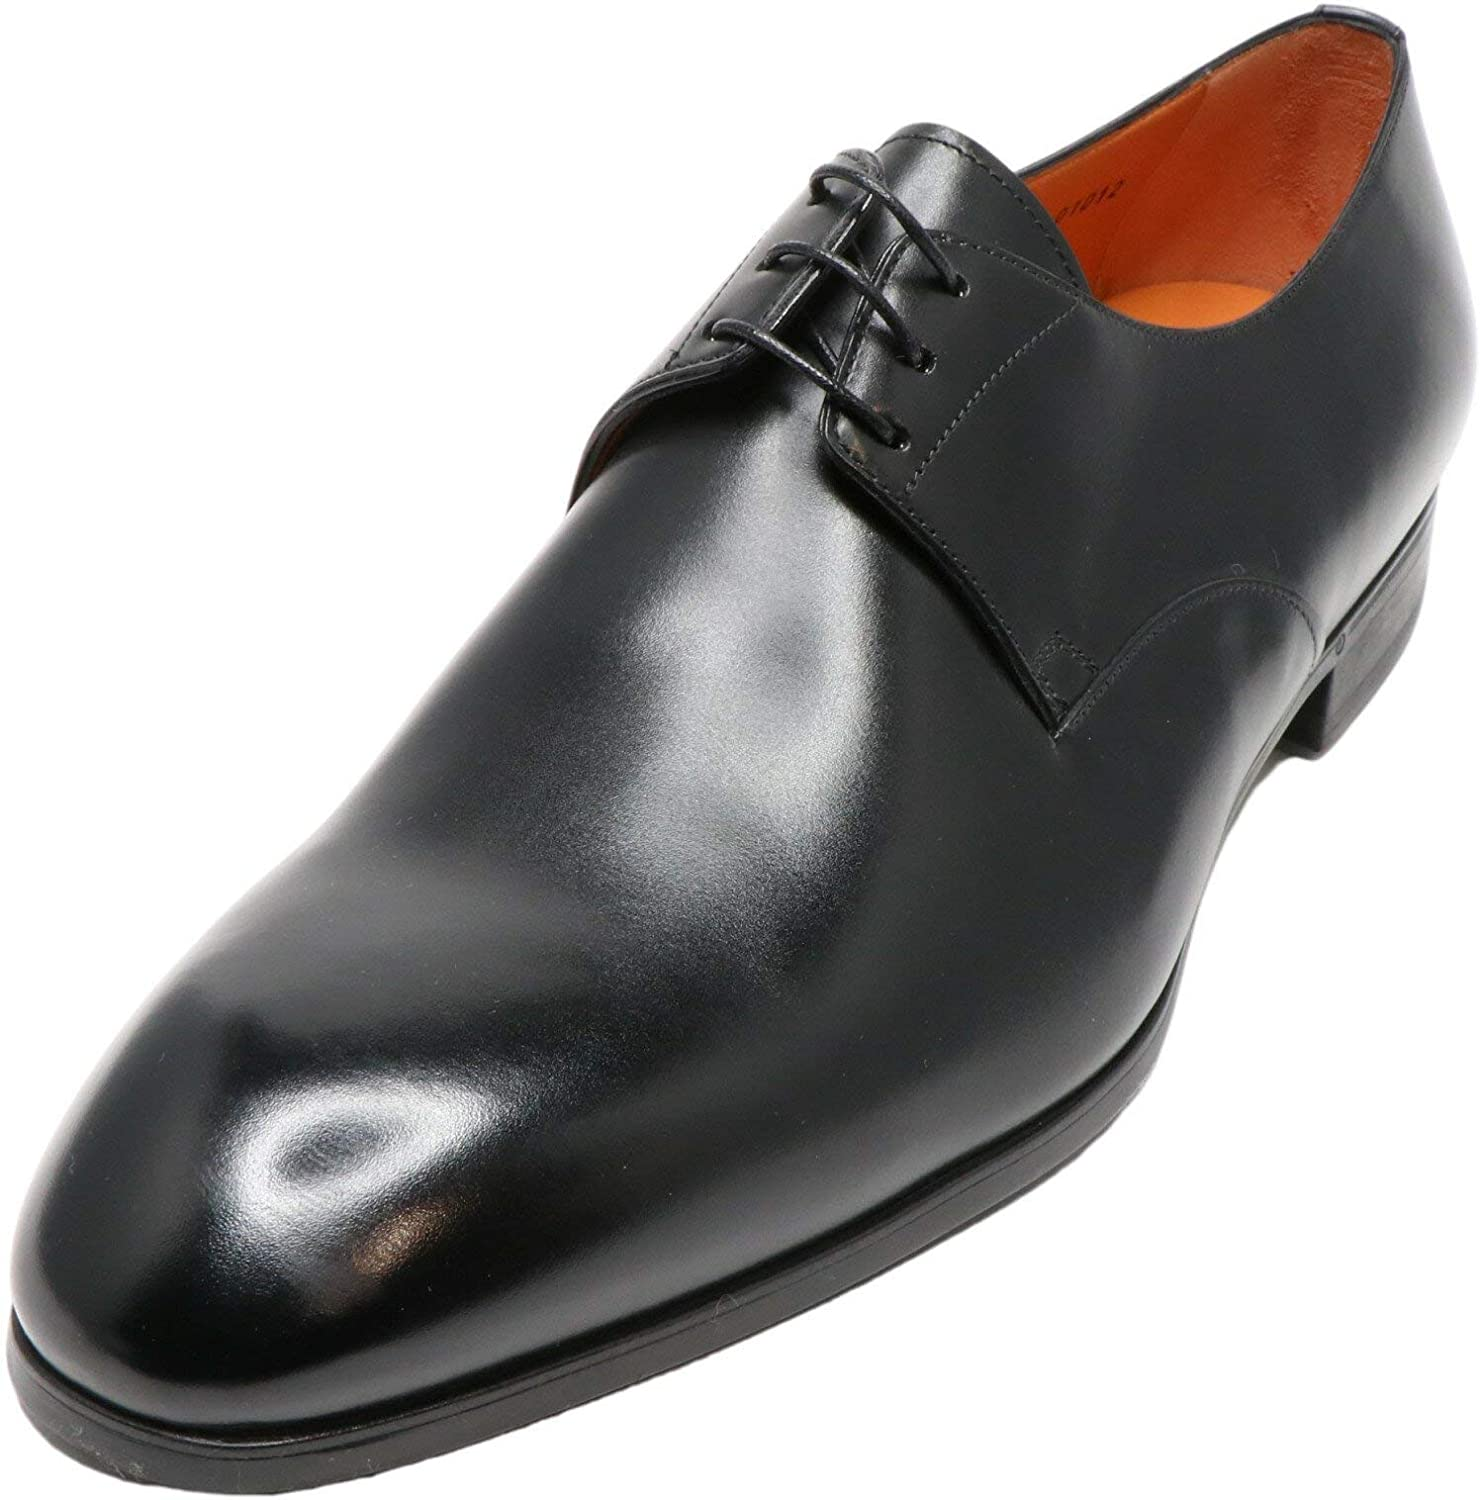 Santoni Men's Induct Ankle-High Leather Loafers & Slip-On